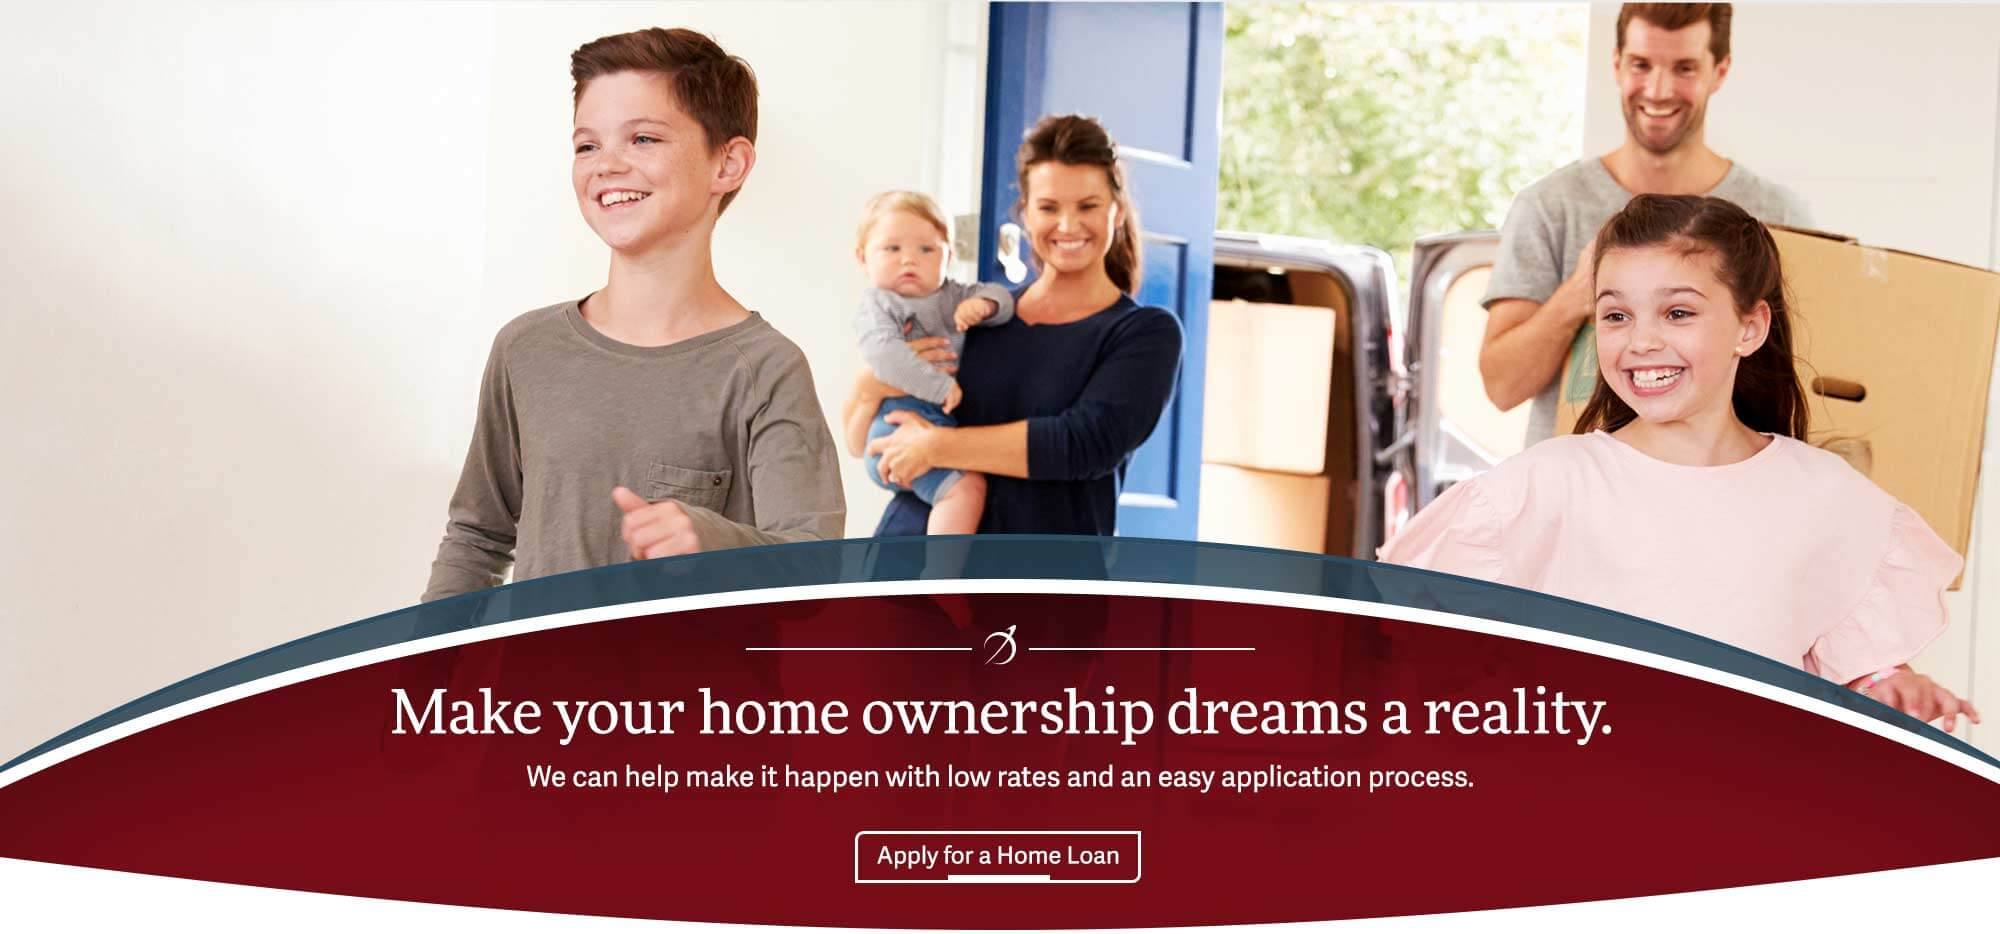 Make your hown ownership dreams a reality with our low rates and easy application process. Apply for a Home Loan